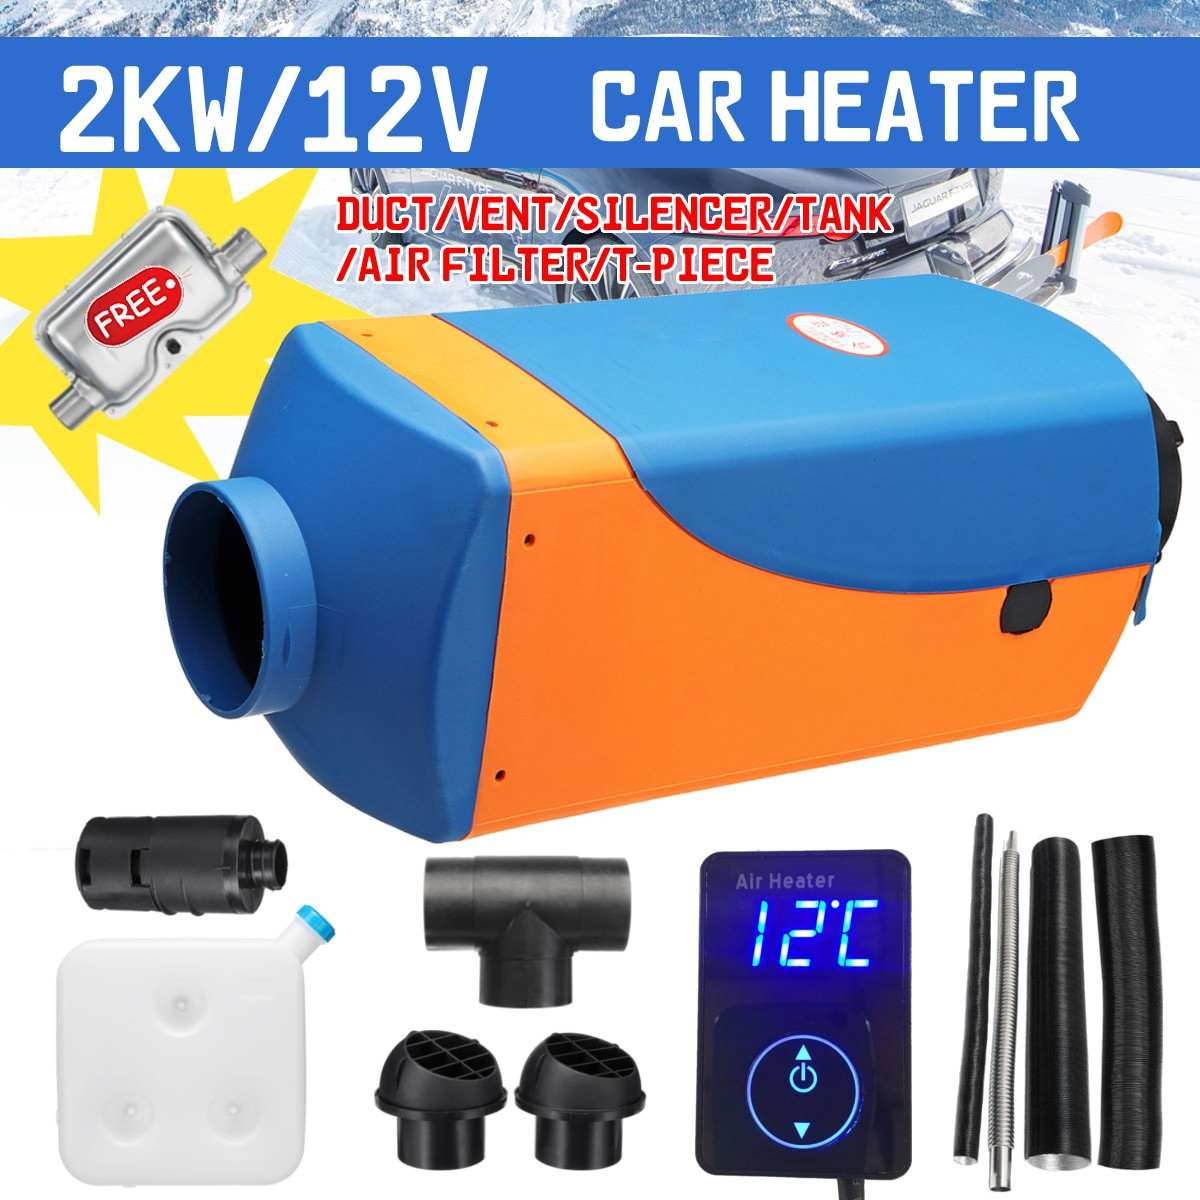 HCalory 2KW 12V Car Fuel Heater Parking Warmer Free Silencer Kit Digital Knob Camping Travel Skiing Driving Home Truck MotorhomeHCalory 2KW 12V Car Fuel Heater Parking Warmer Free Silencer Kit Digital Knob Camping Travel Skiing Driving Home Truck Motorhome